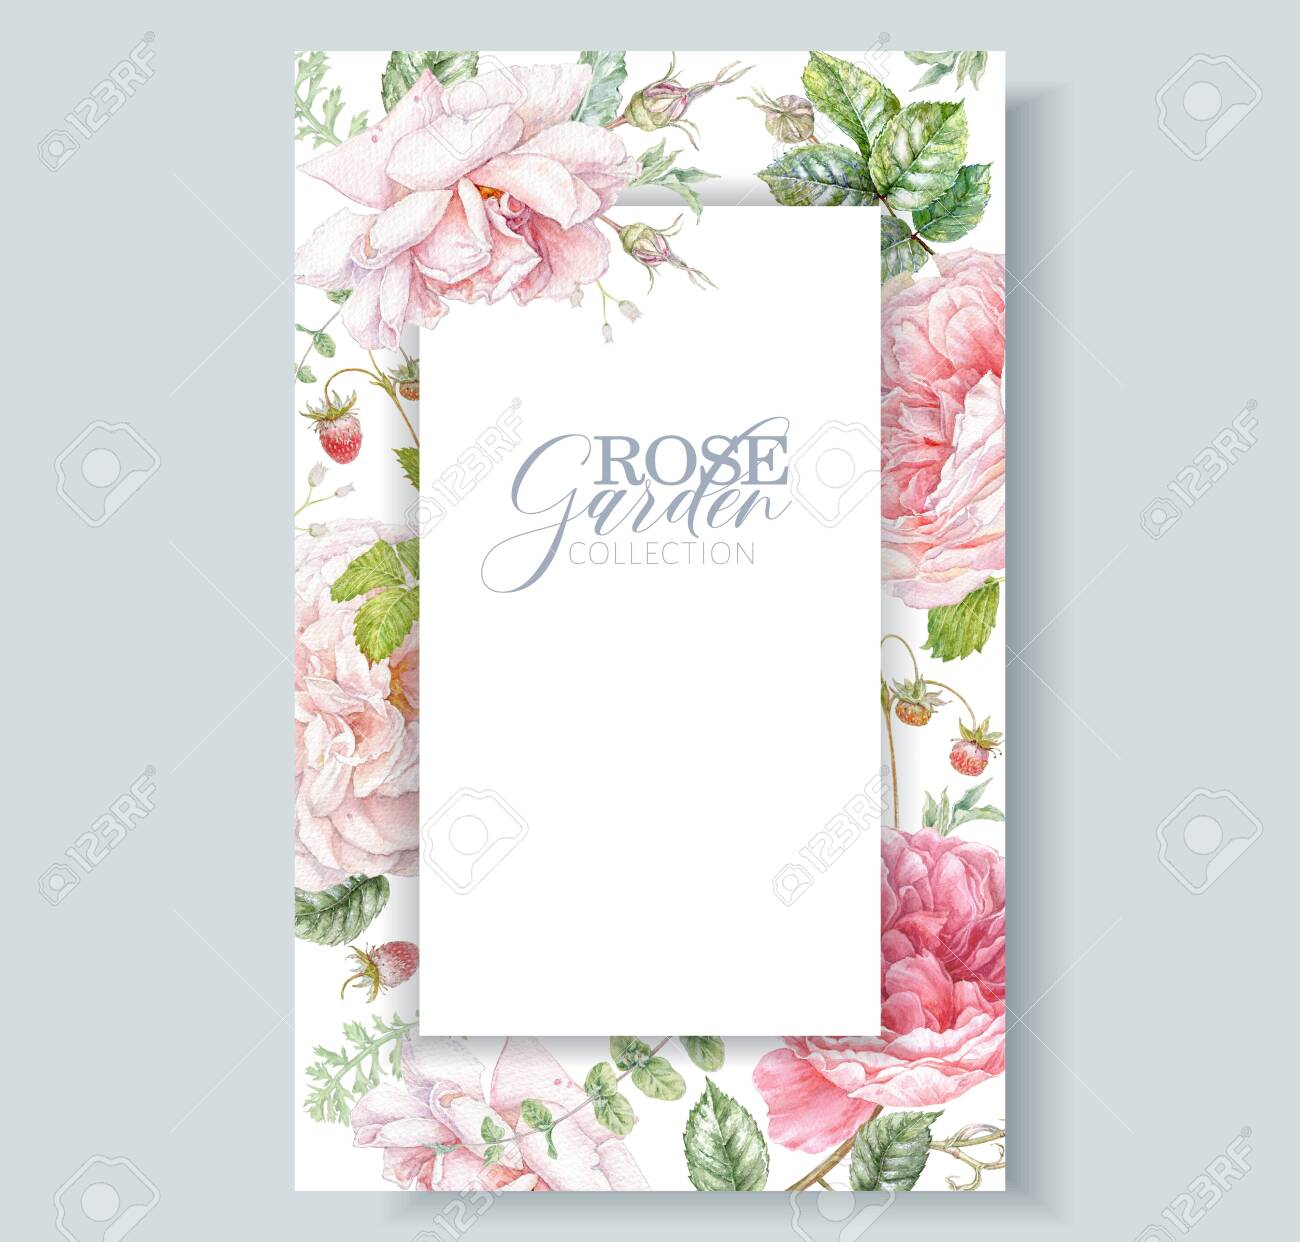 Watercolor hand drawn frame with pink rose flowers, berries and leaves isolated on white background. Floral card for natural cosmetics, women products, summer background, greeting or wedding design - 141378055